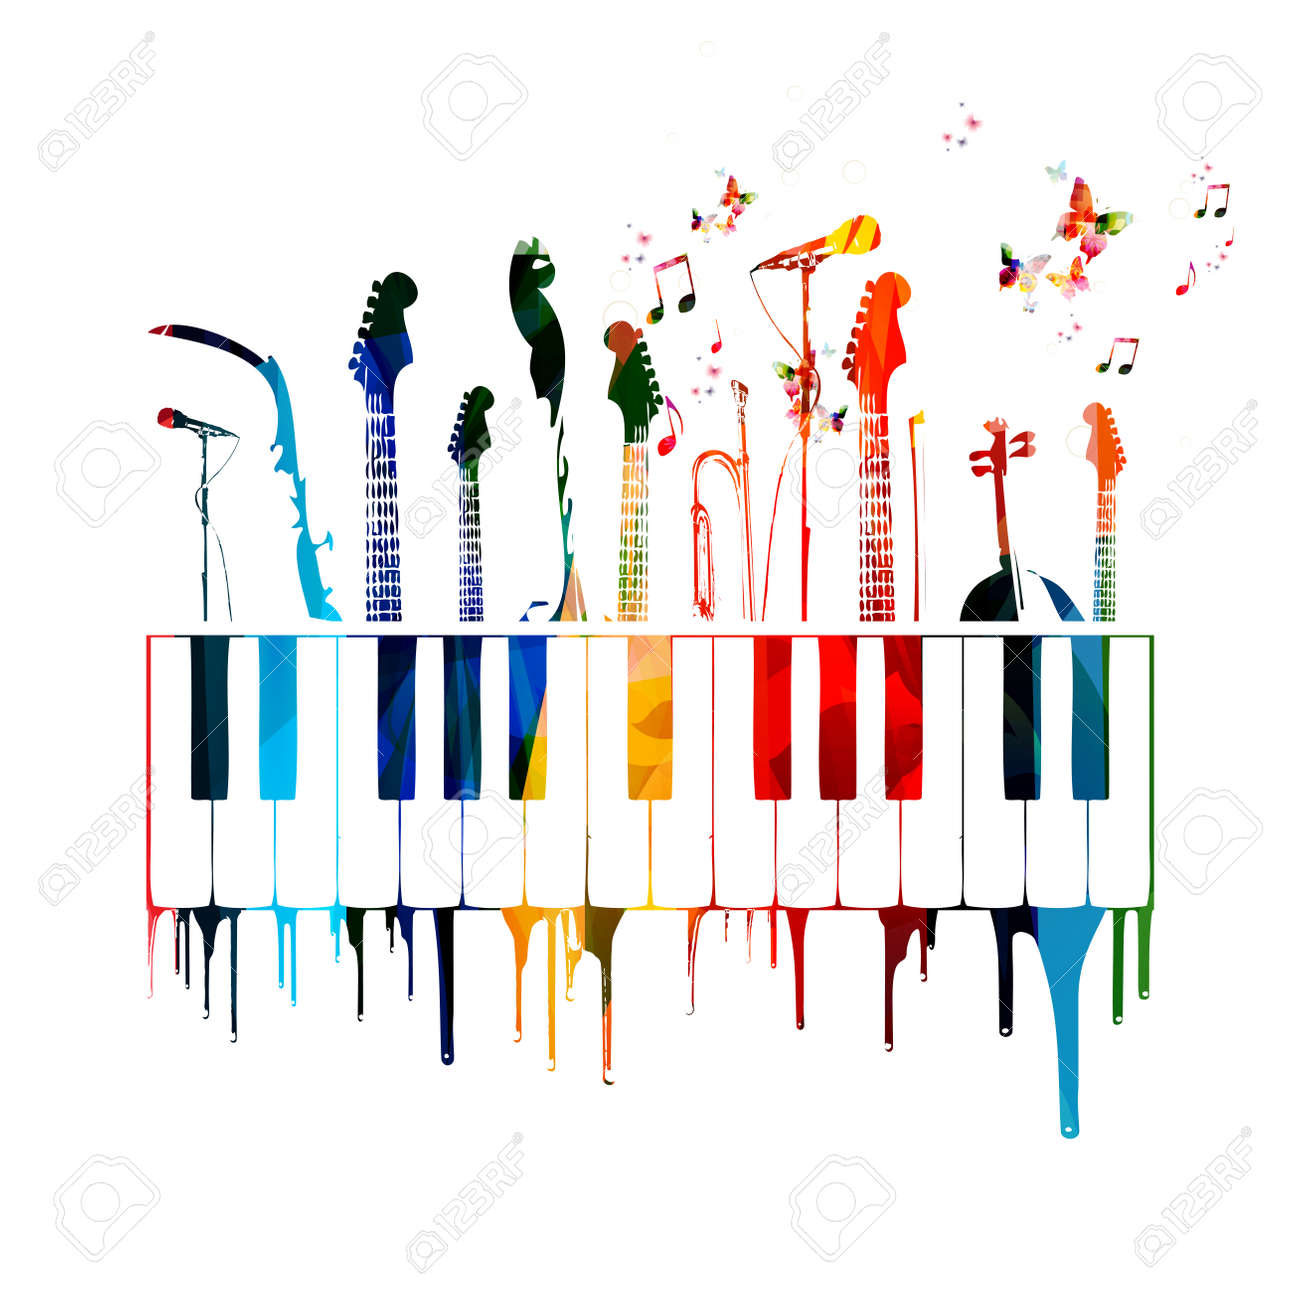 Colorful music instruments background with butterflies - 43199679